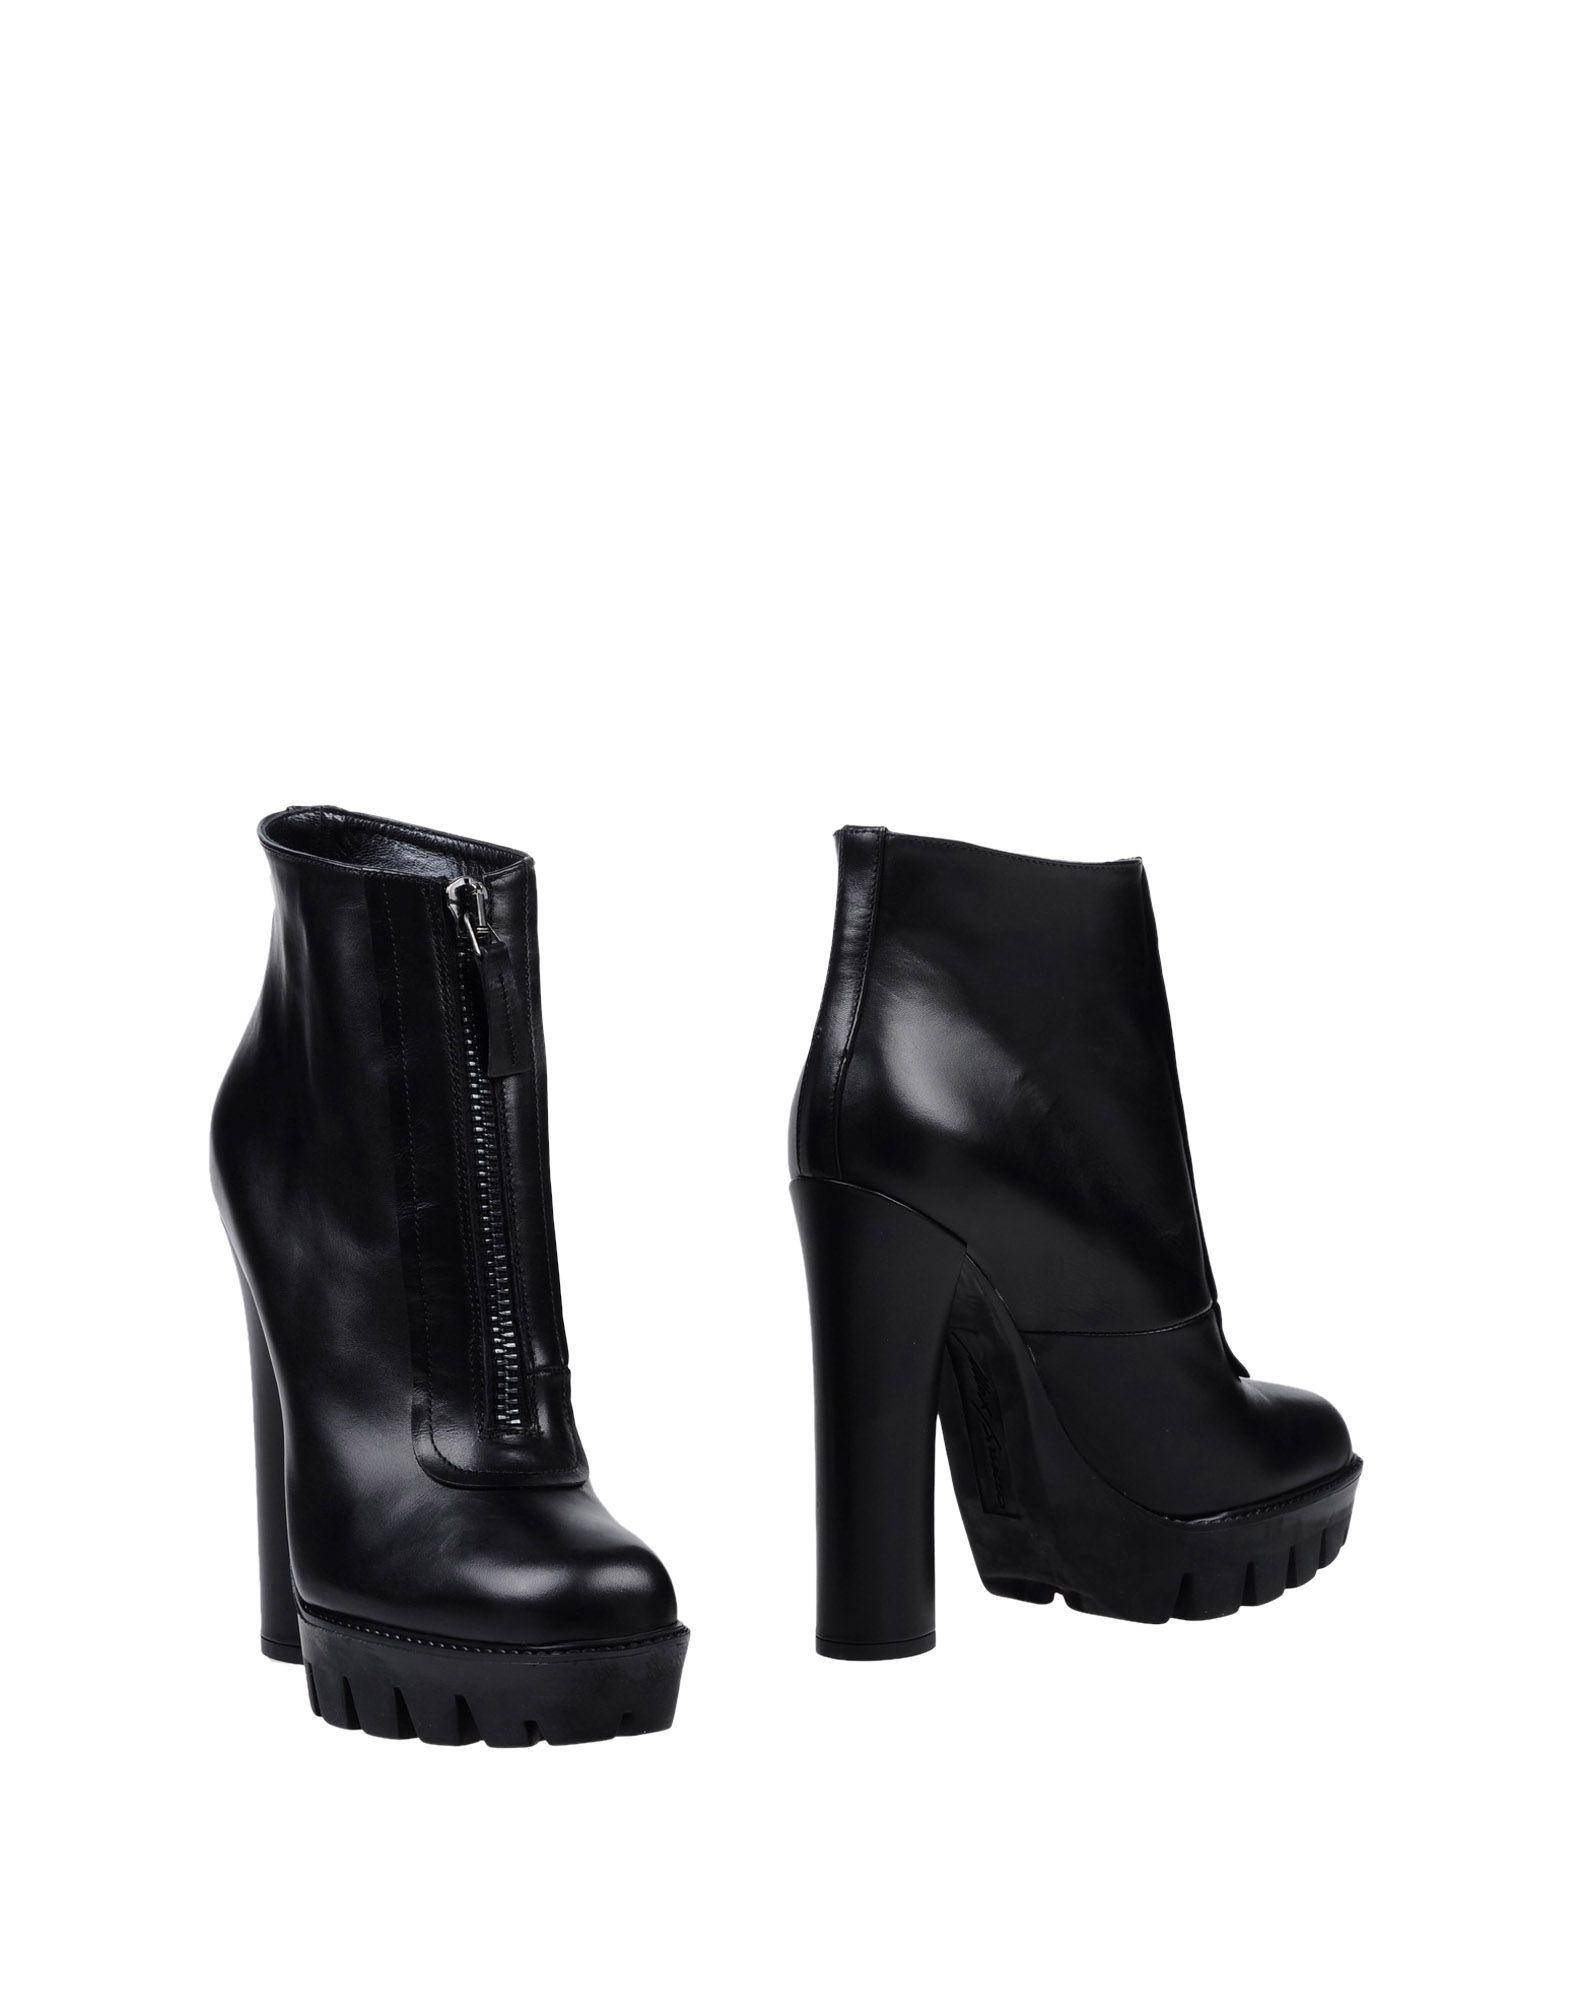 MAXBIANCO Ankle boots free shipping fast delivery VIik0d